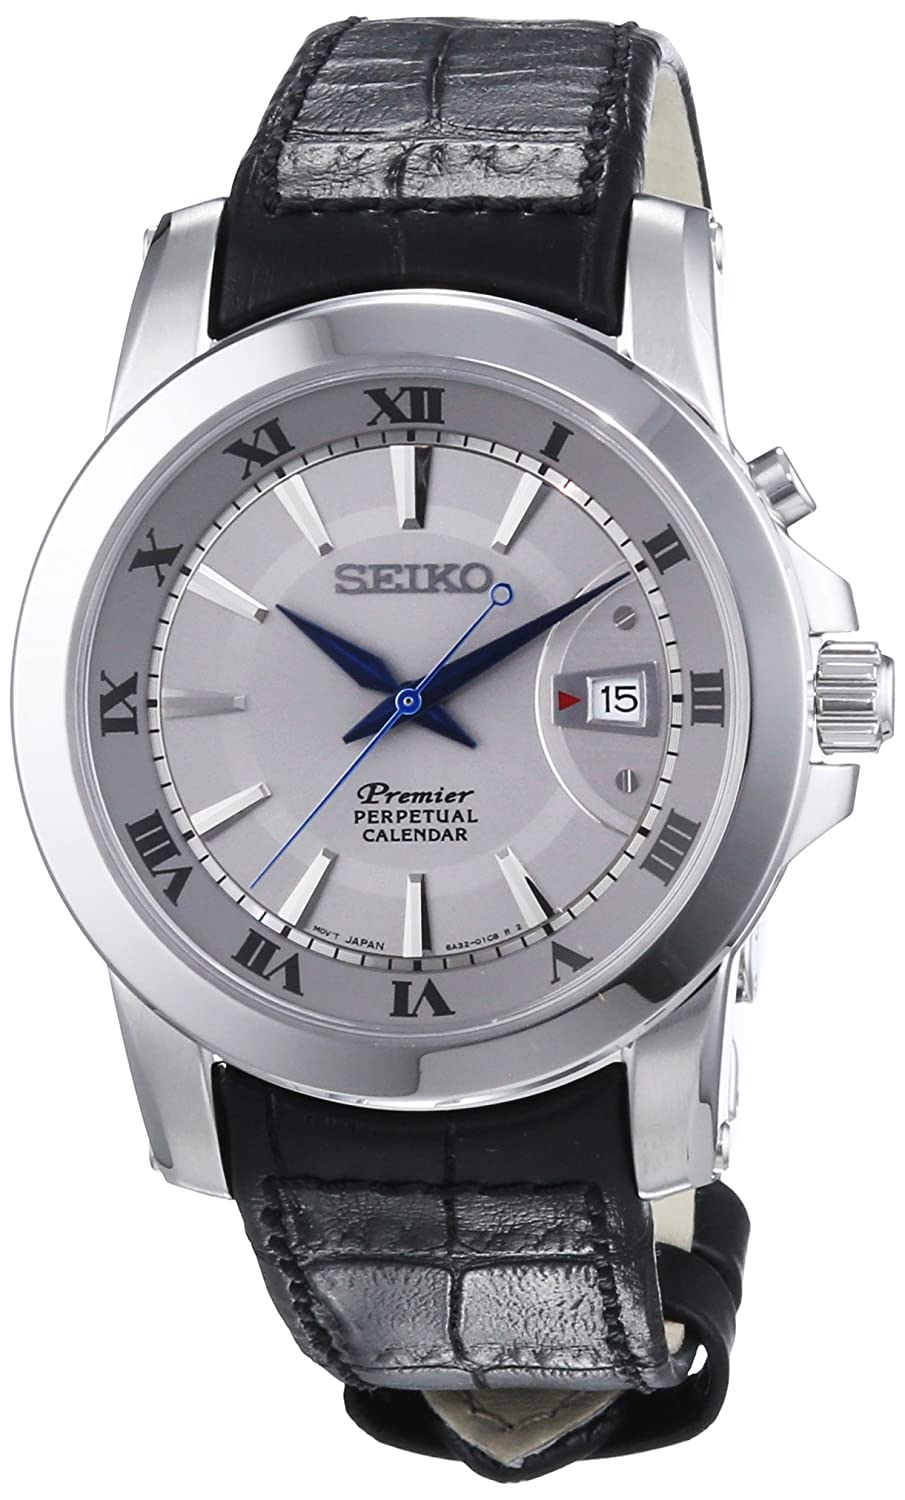 Seiko premier SNQ143 42mm Stainless Steel Case Black Calfskin Hardlex used for Seiko only Men s Watch